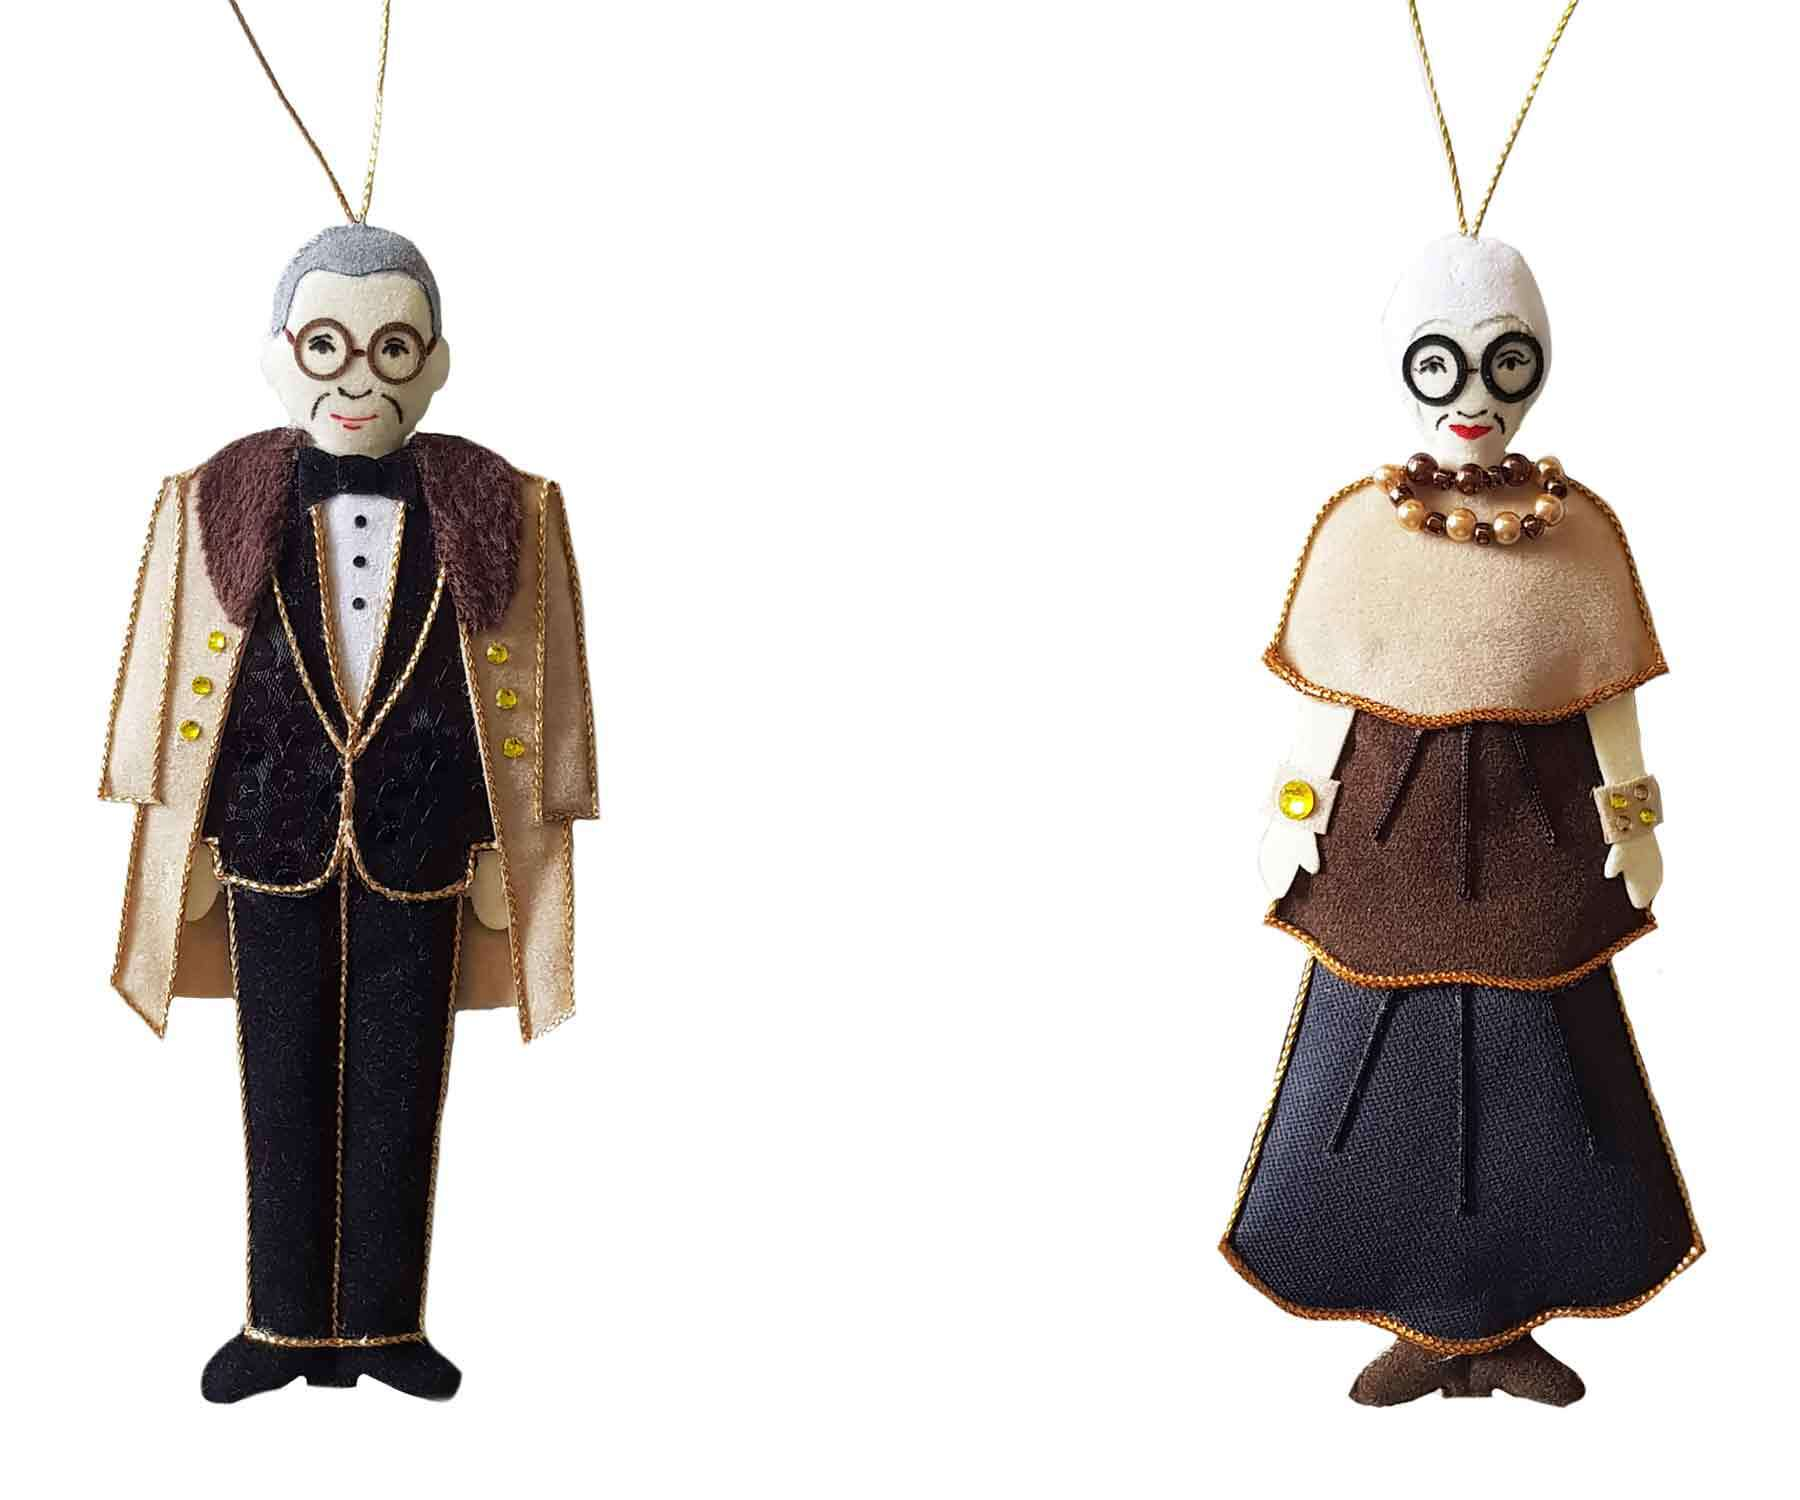 PEM-exclusive ornaments created to honor Carl and Iris Apfel.